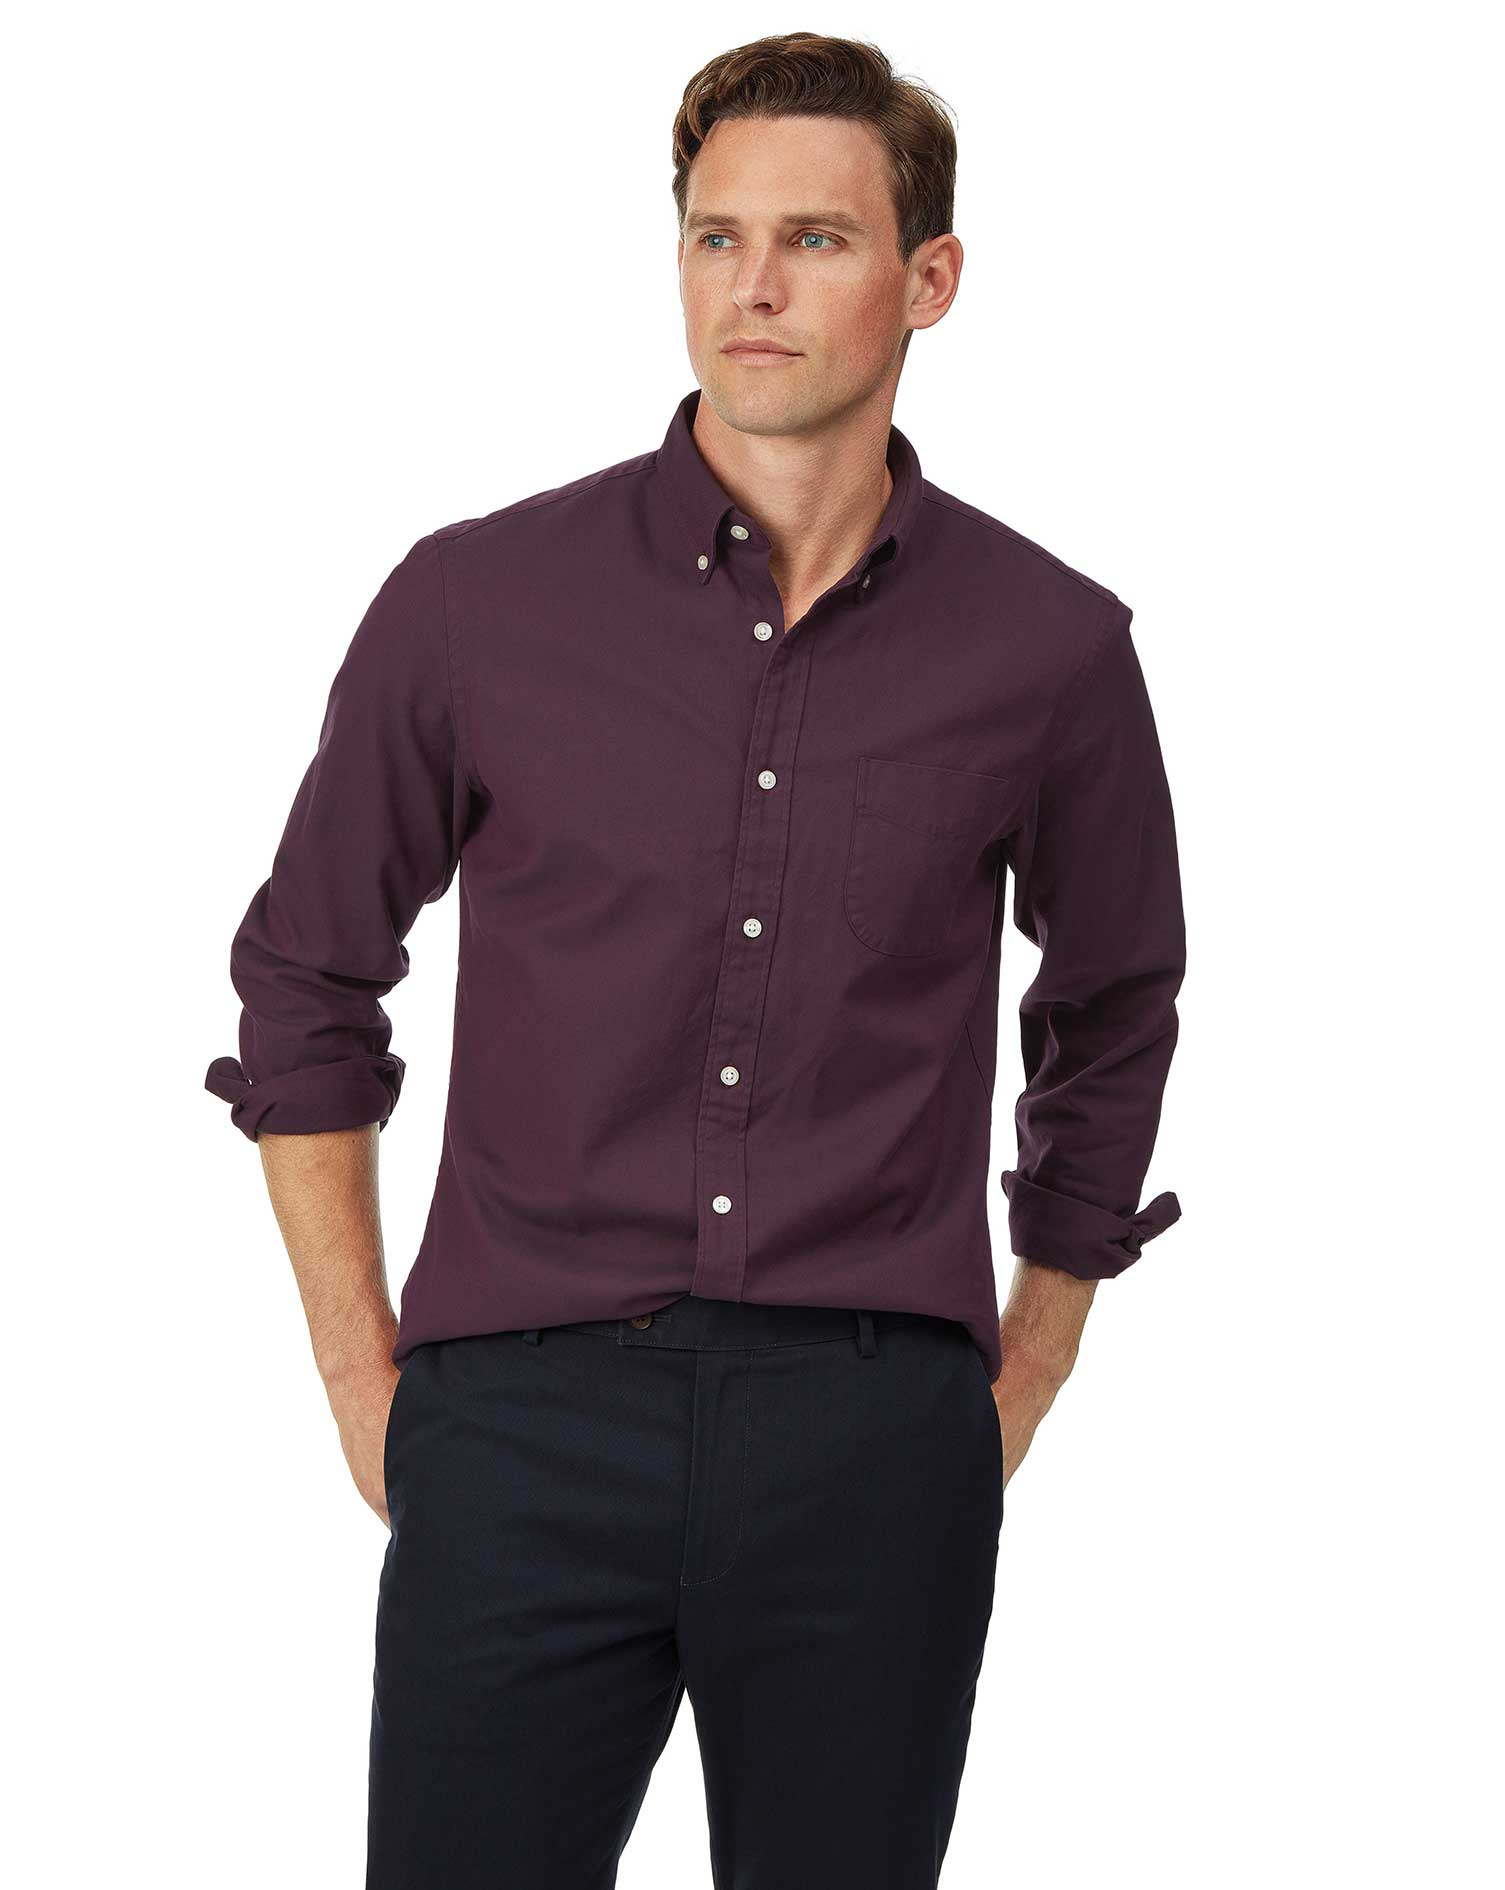 Cotton Slim Fit Button-Down Washed Oxford Berry Shirt